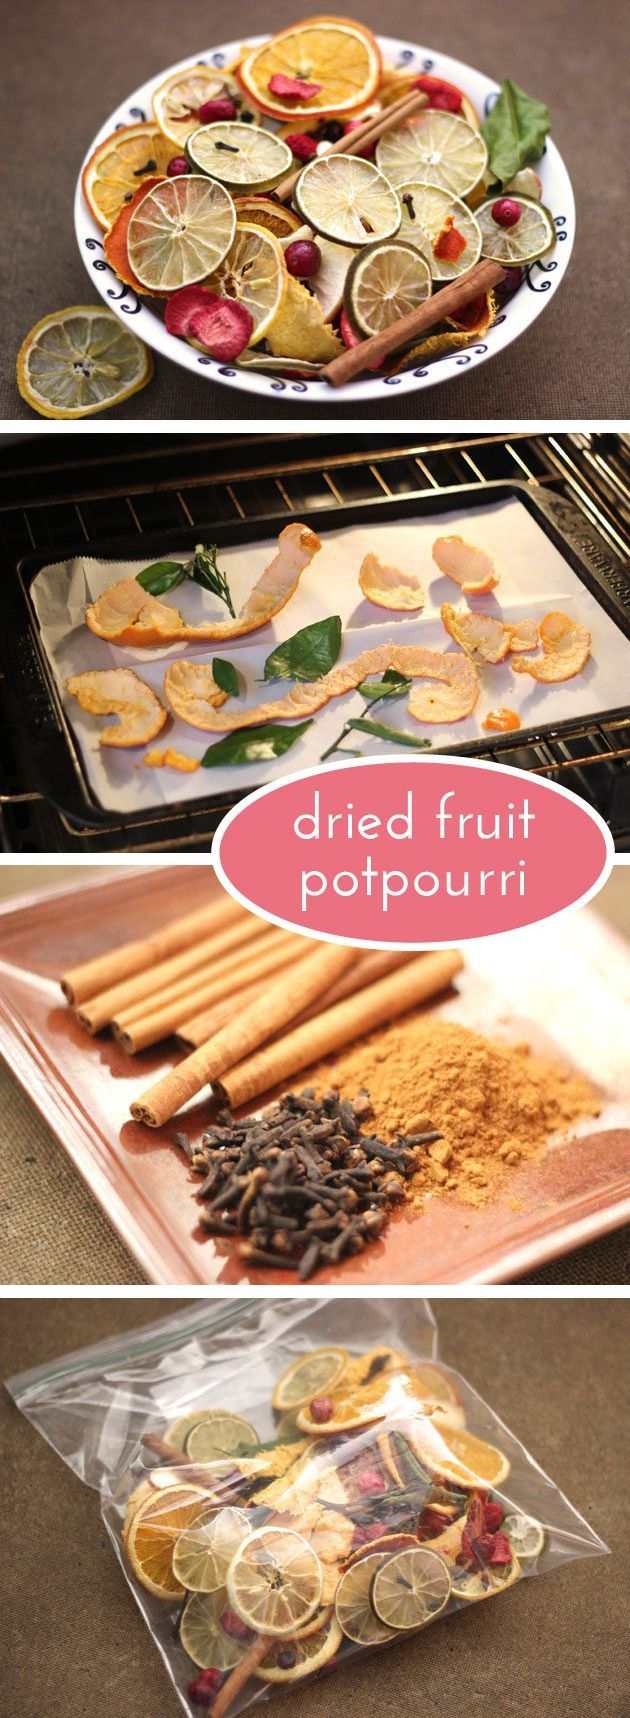 Dried fruit potpourri imparts a zest that fills your home with a crisp, fresh scent perfect for spring! Here's how to best dry your fruit: www.ehow.com/...